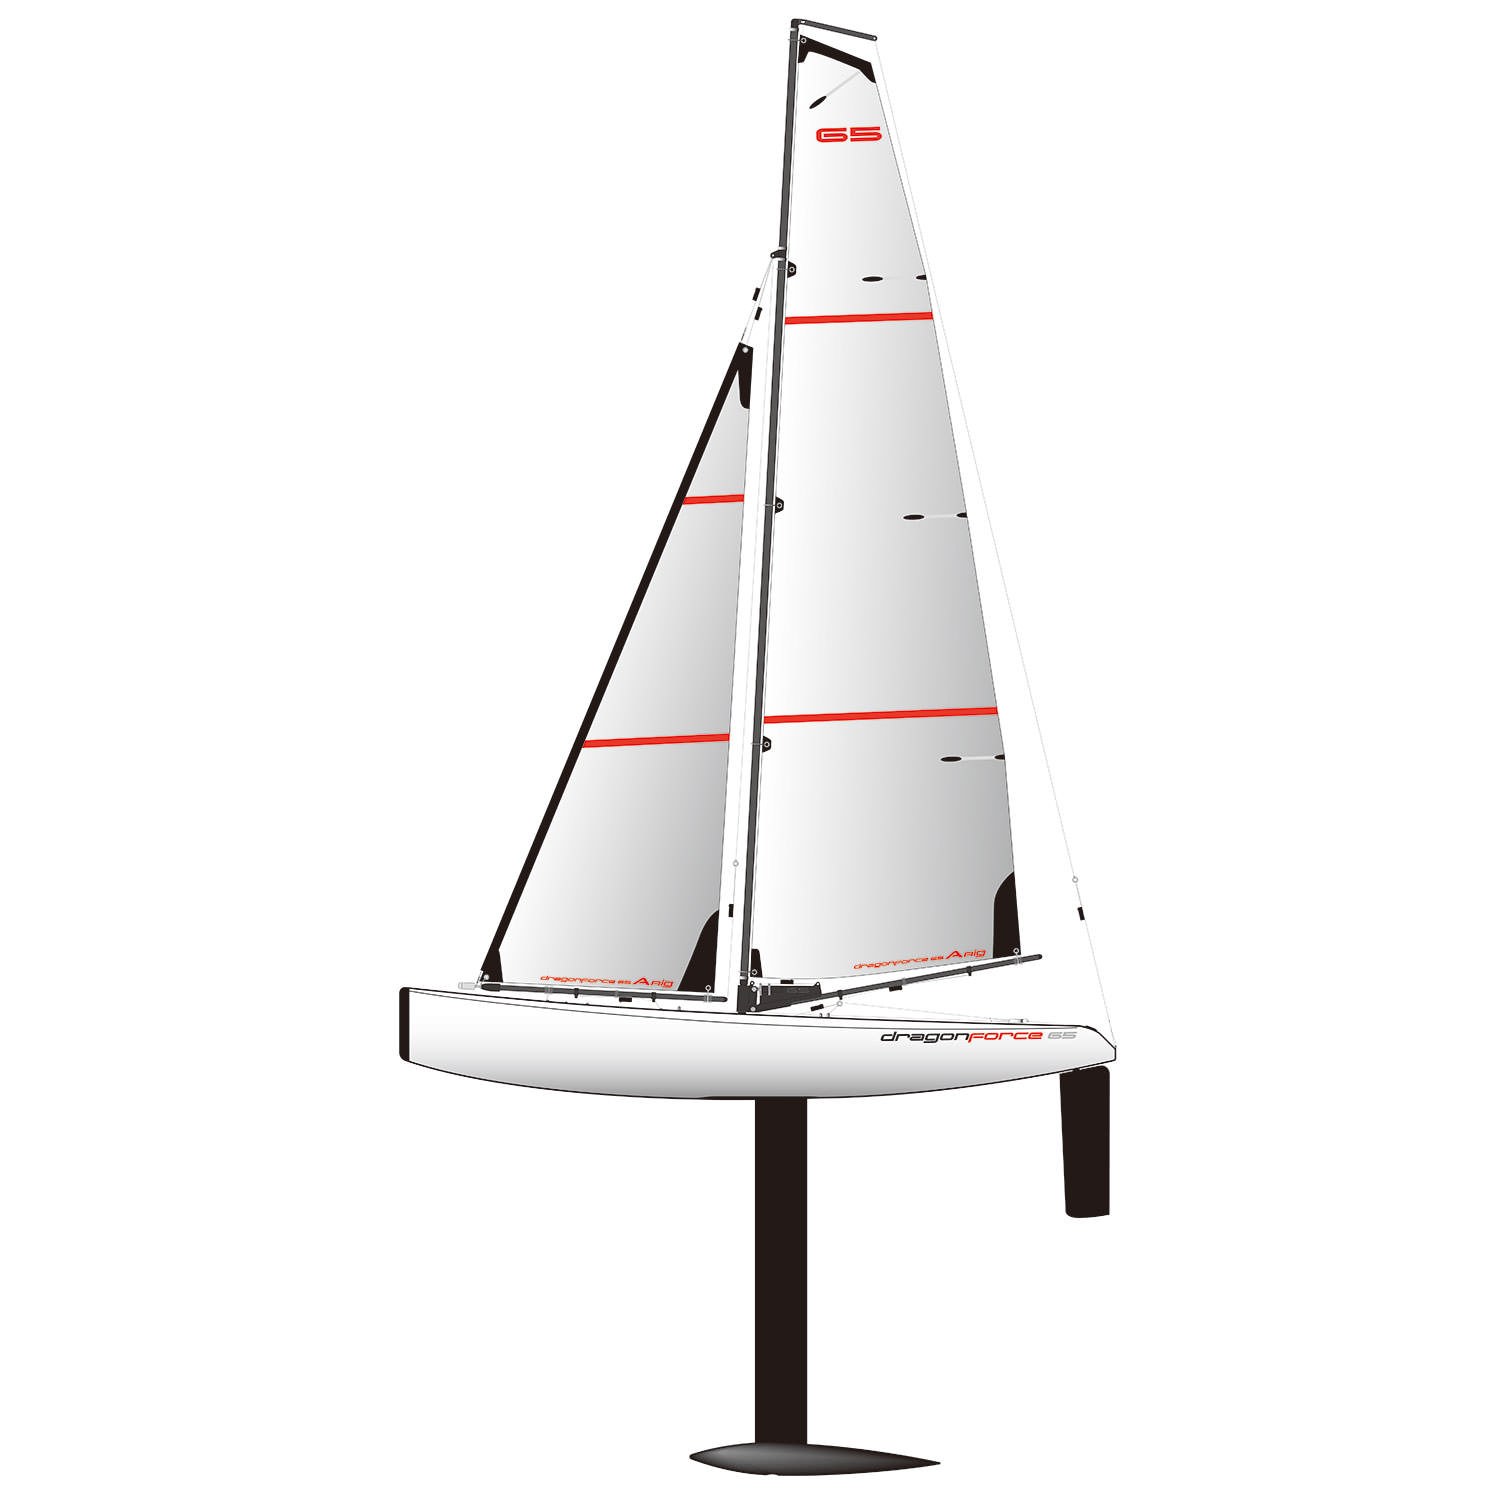 Joysway DragonForce 65 V6 2.4GHz RG65 Class DF65 RC Yacht - PNP (without Tx or Rx)